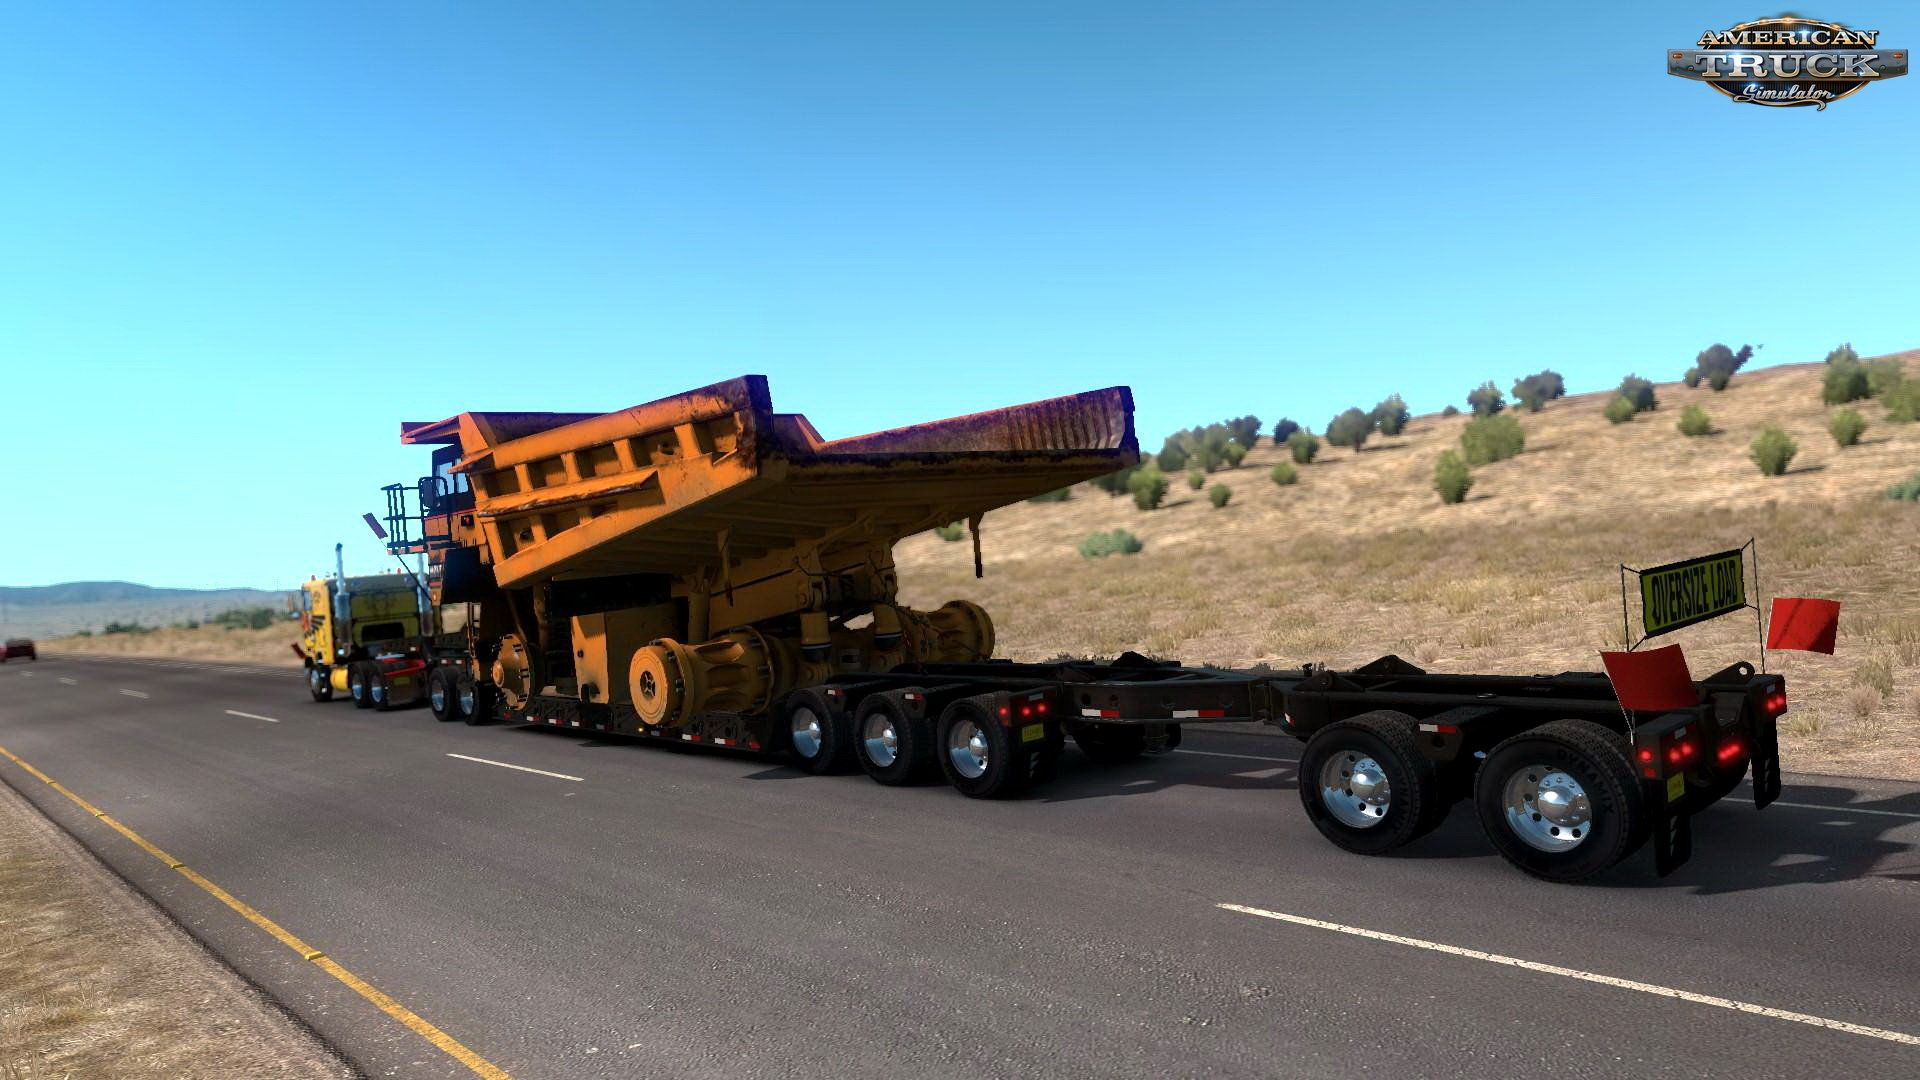 Caterpillar 785C Mining Truck for Heavy Cargo Pack DLC v1.0 by Harven (1.30.x)